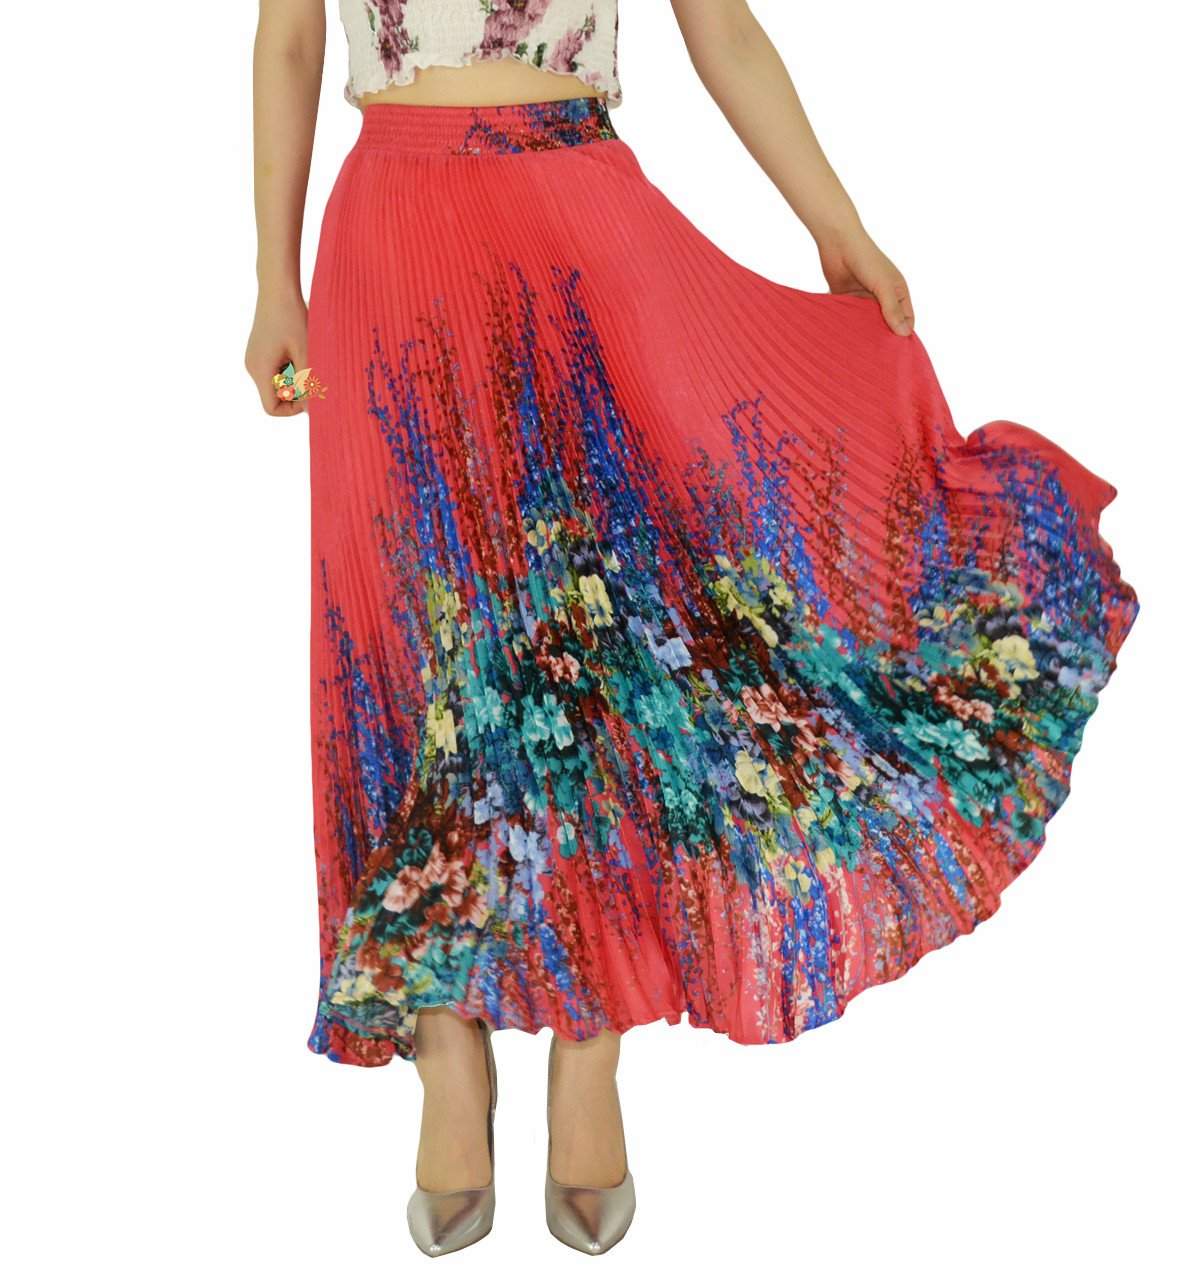 YSJERA Womens Long Maxi Skirt - 35.4'' Floral Sunray Pleated Chiffon Bohemian Chic Full Skirts (One Size, Red)